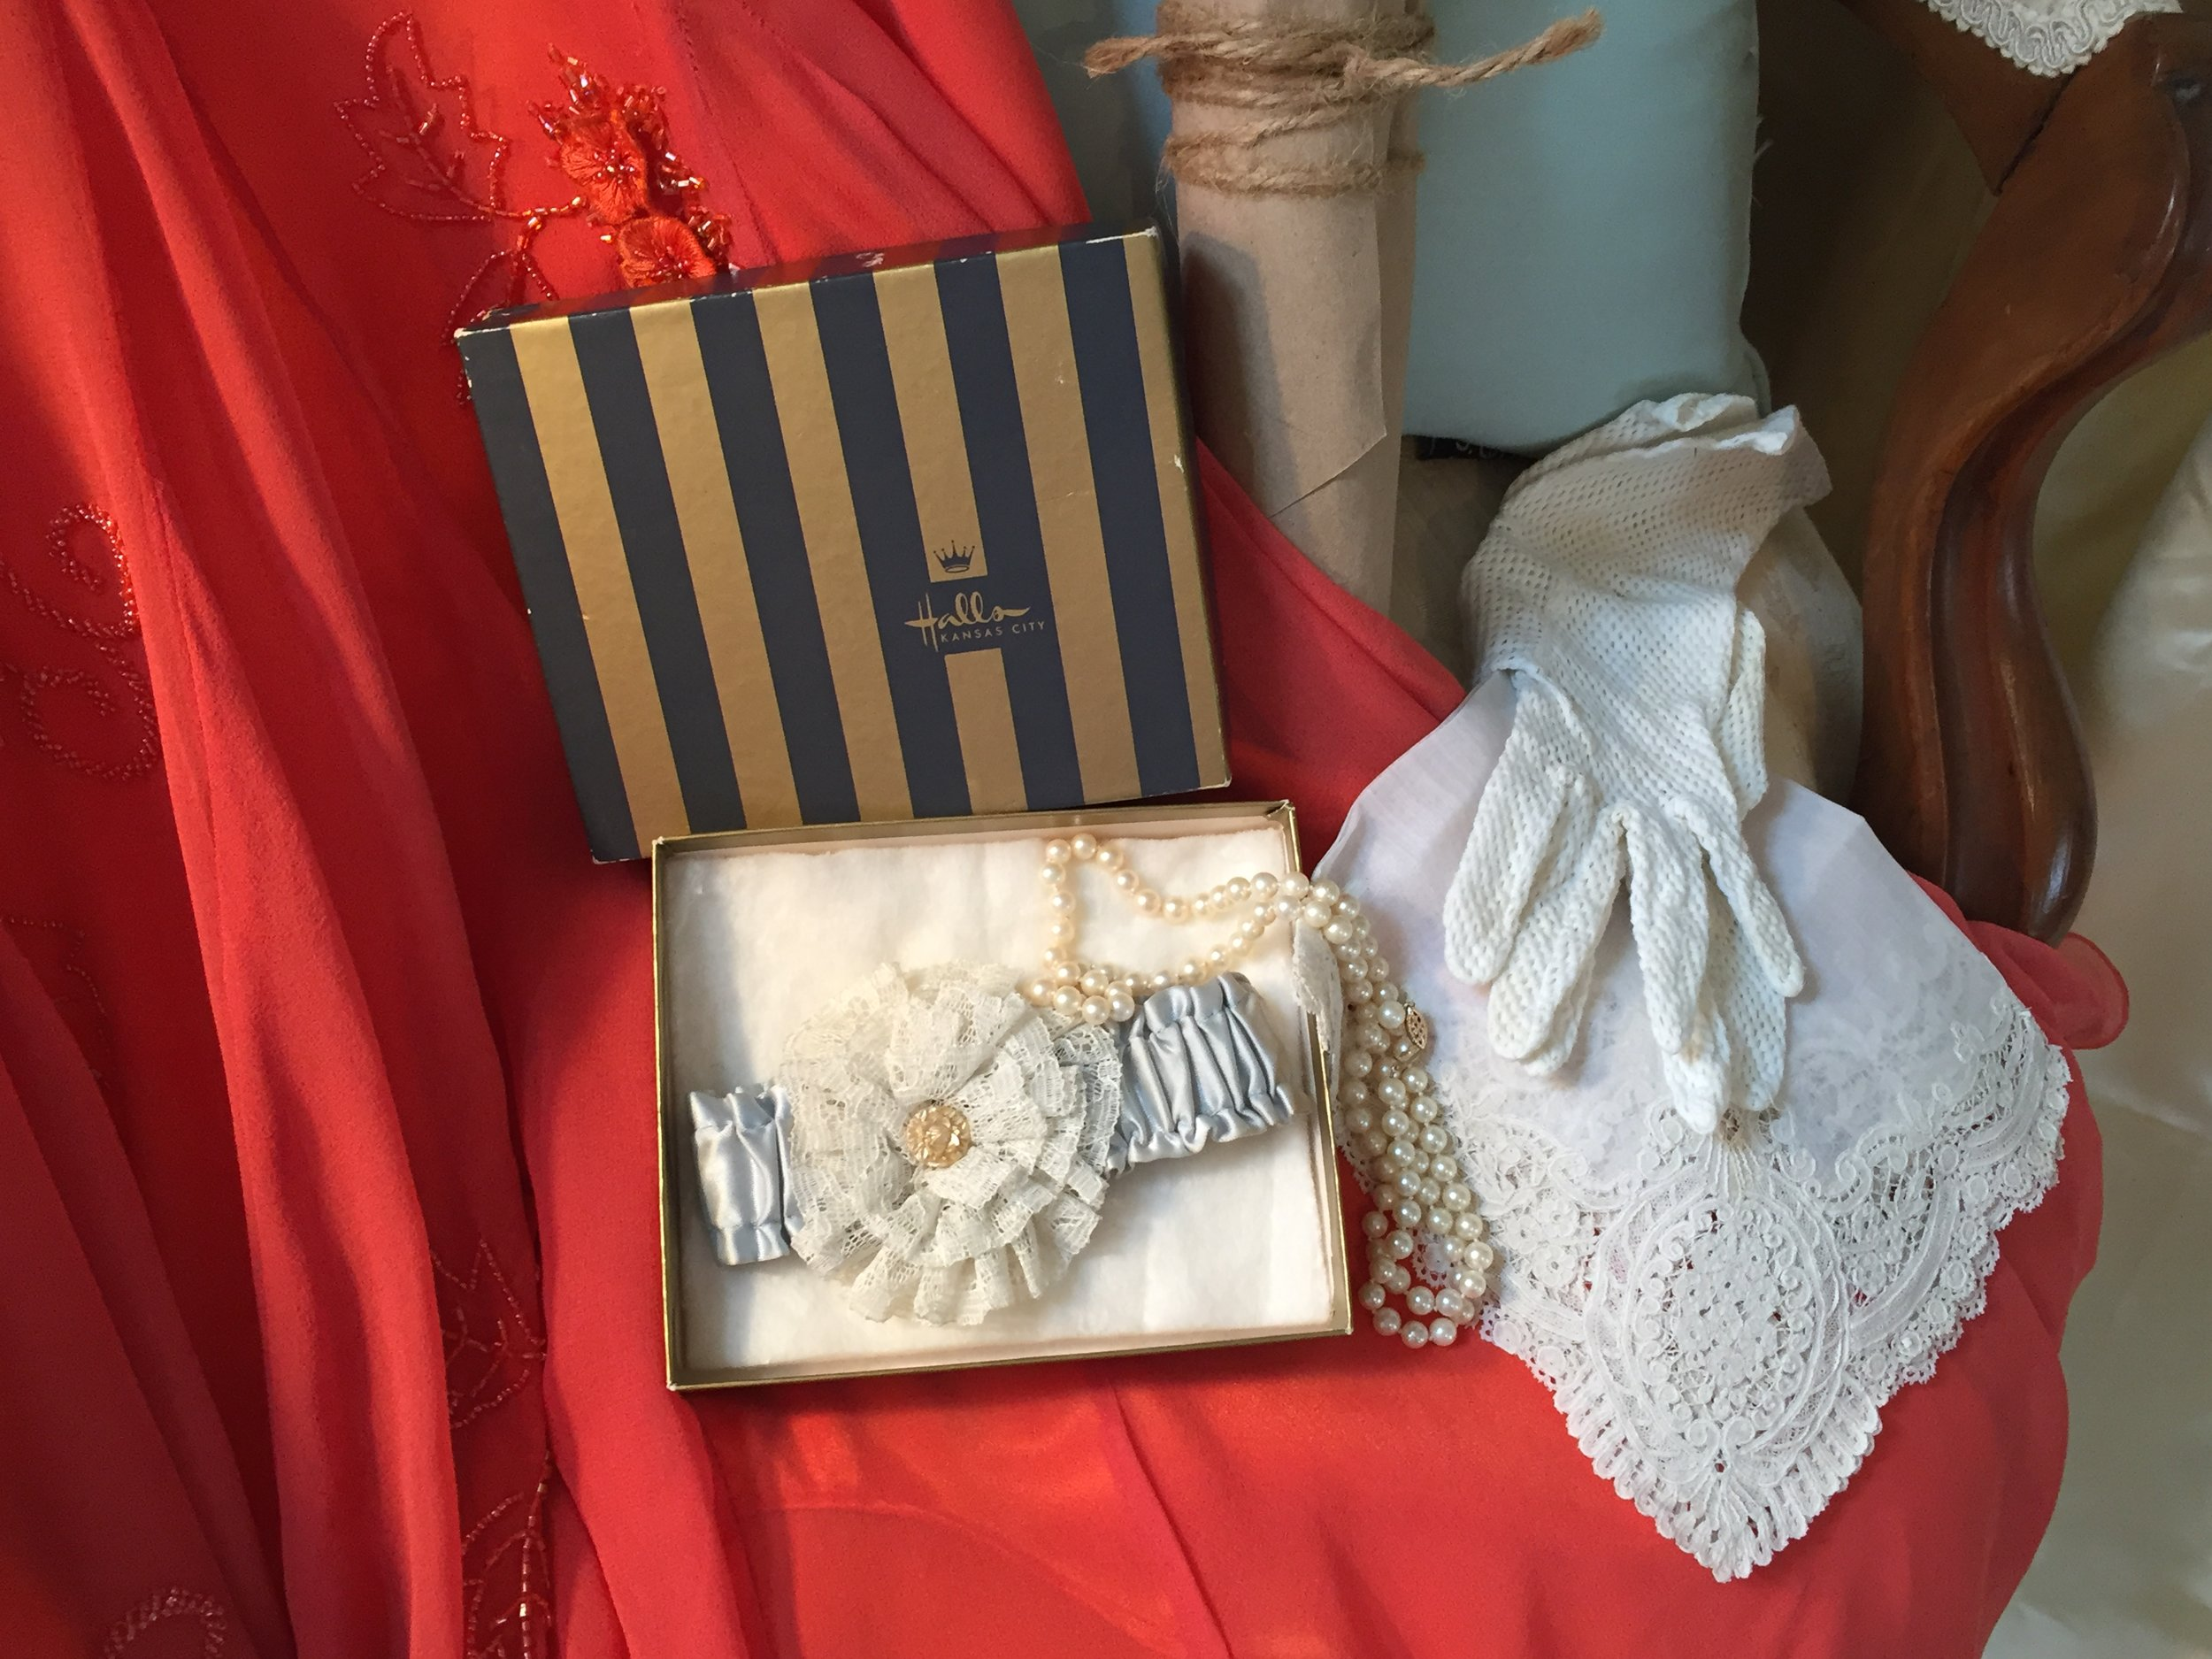 The family heirlooms_ Mother's pearls, grandmother's garter and Great Grandmother's hand tatted lace handkerchief.JPG